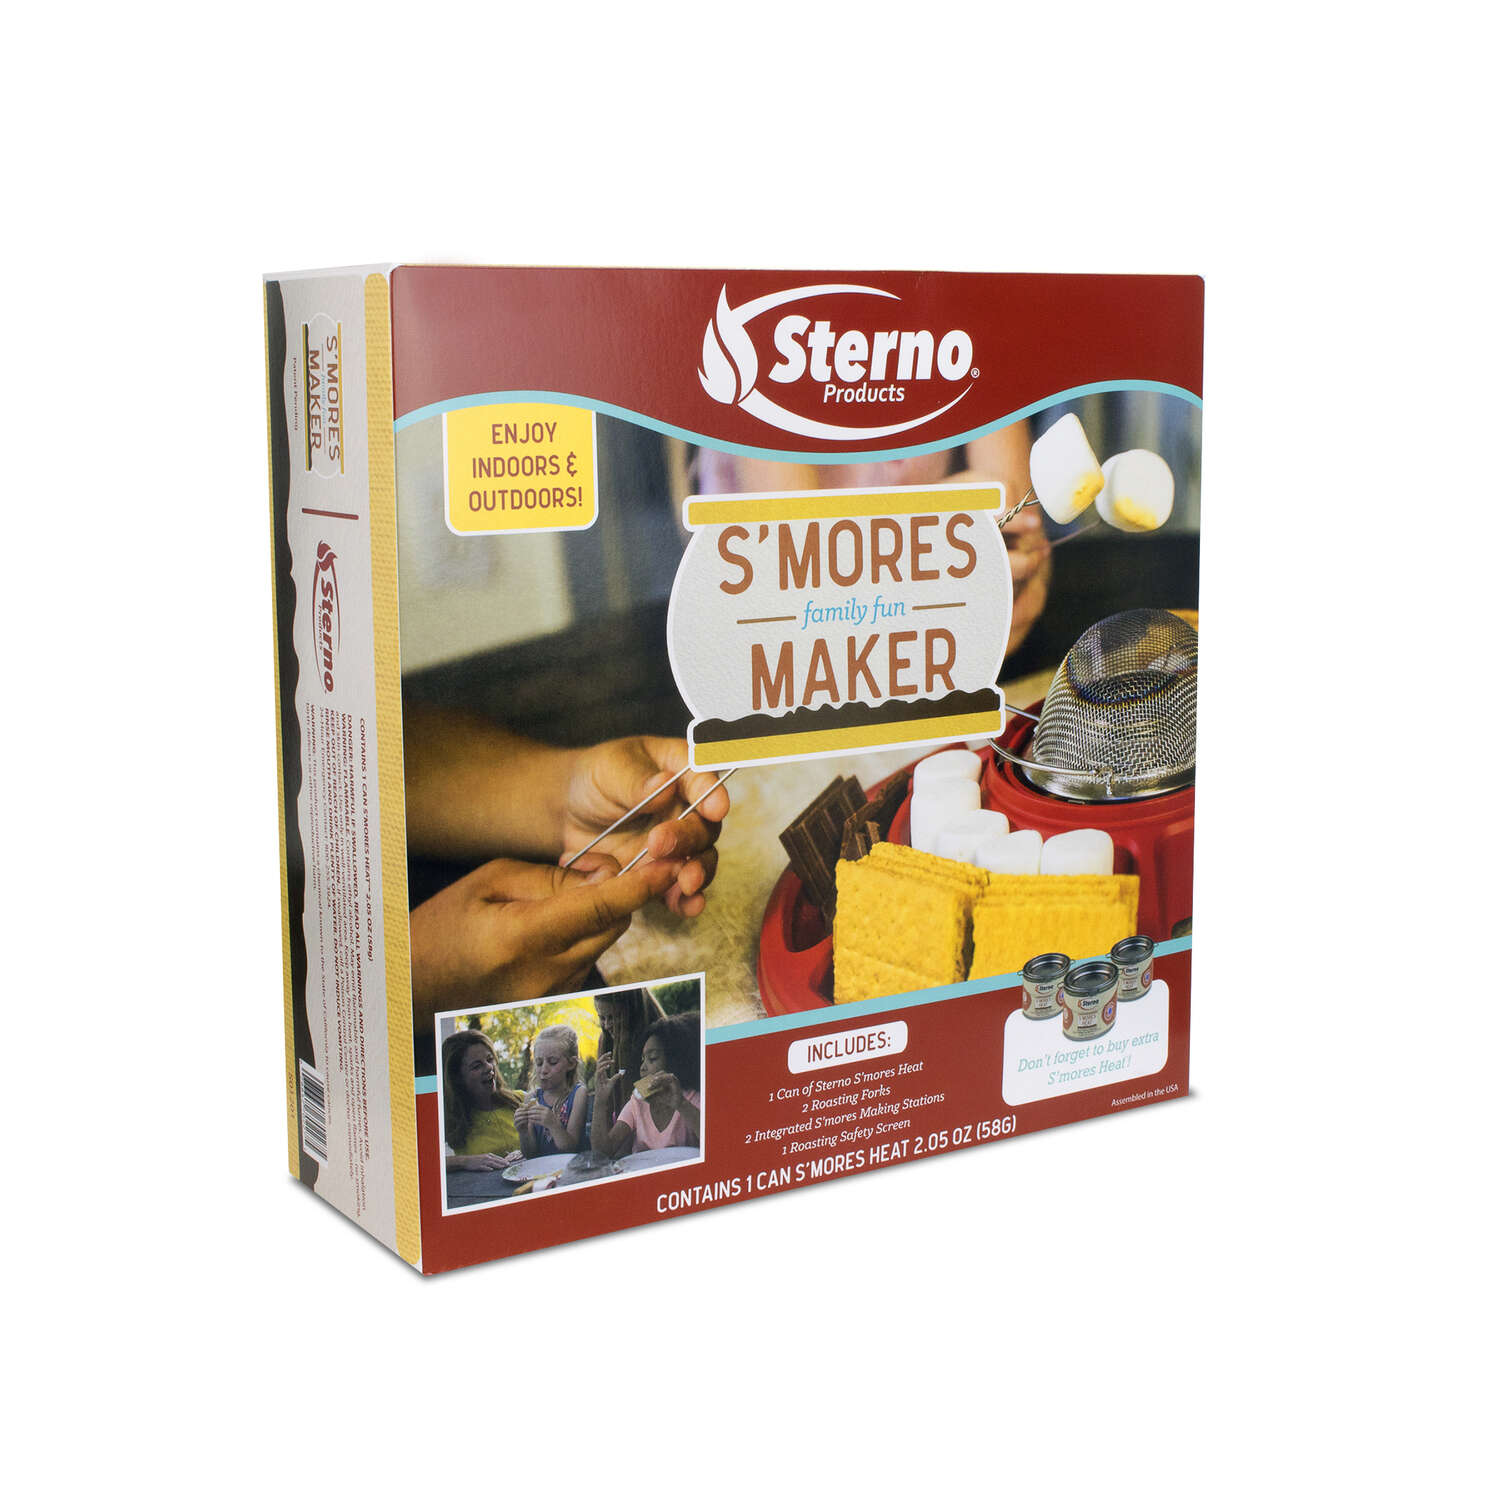 Sterno  S'MORES MAKER  Red  Campfire Kit  14.00 in. H x 14.00 in. W x 3.37 in. L 1 pk